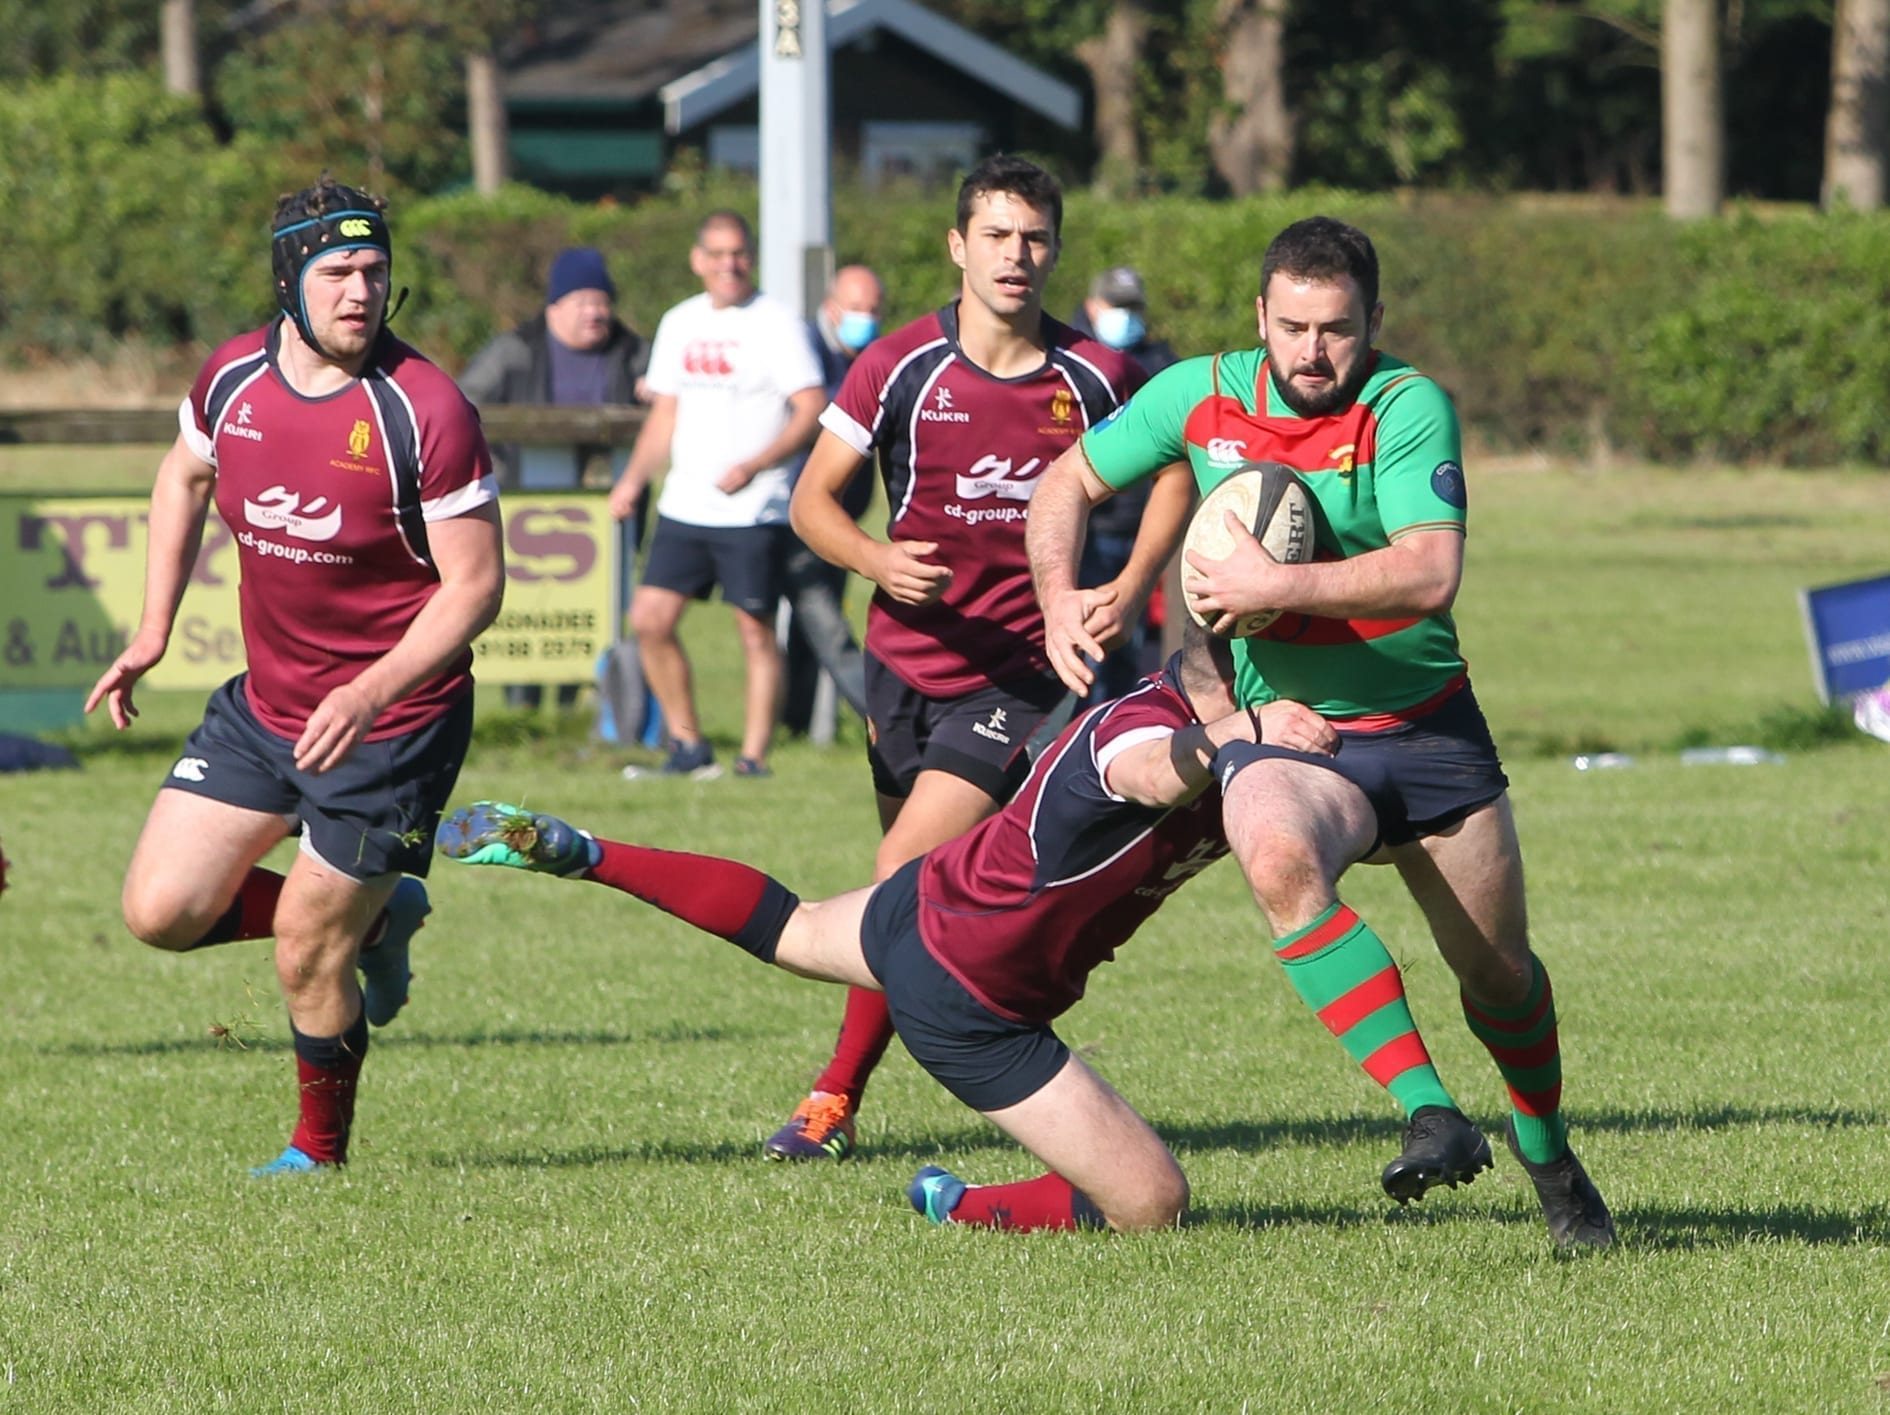 A further setback for North Down Rugby clubs